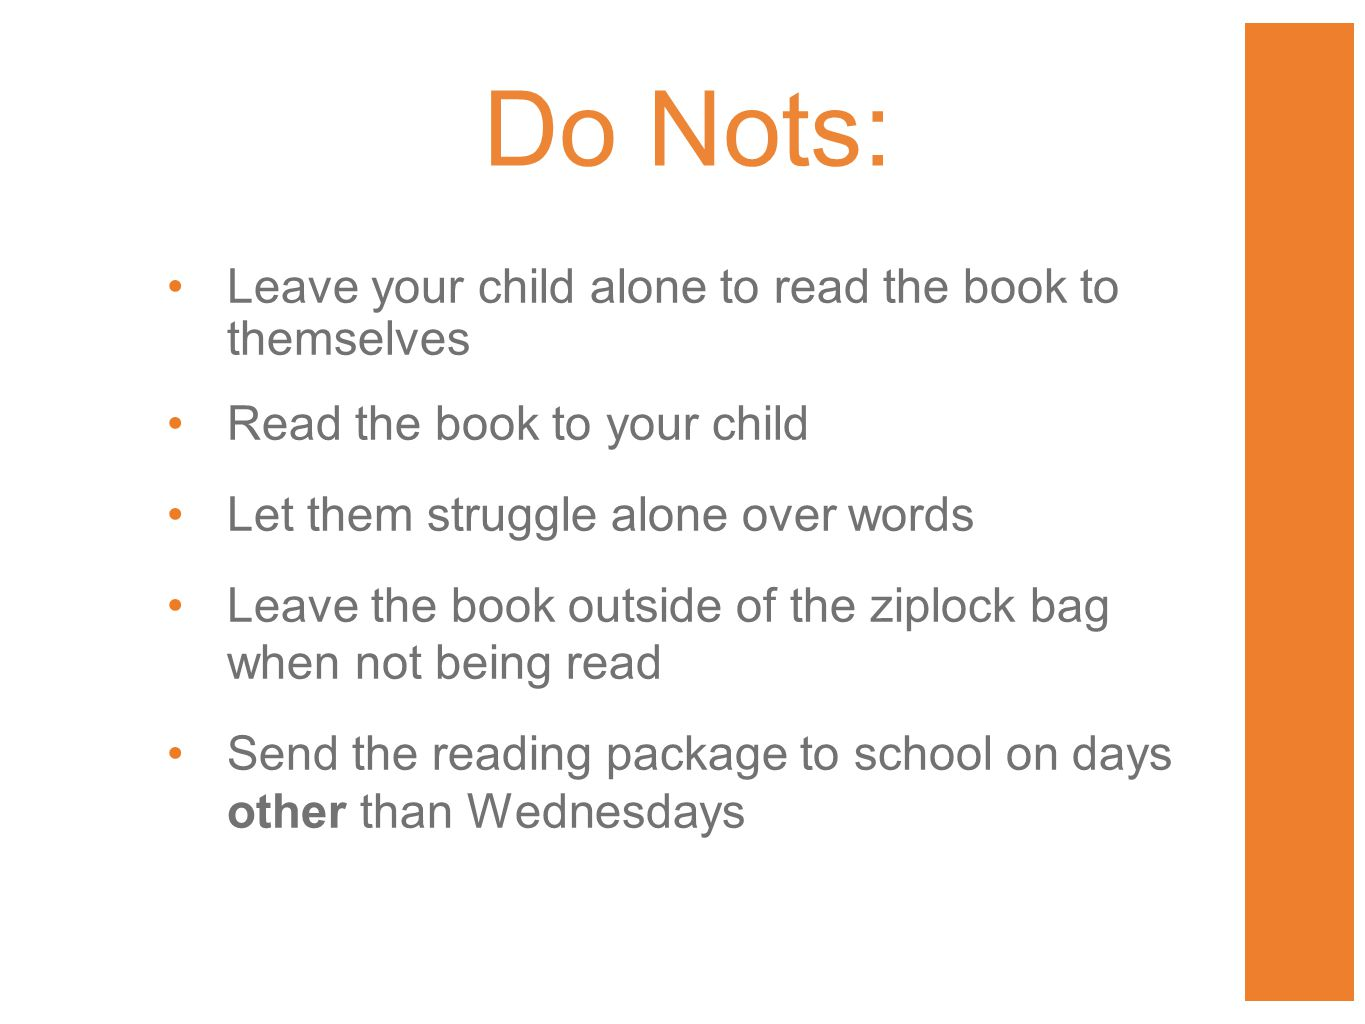 Leave your child alone to read the book to themselves Read the book to your child Let them struggle alone over words Leave the book outside of the ziplock bag when not being read Send the reading package to school on days other than Wednesdays Do Nots: